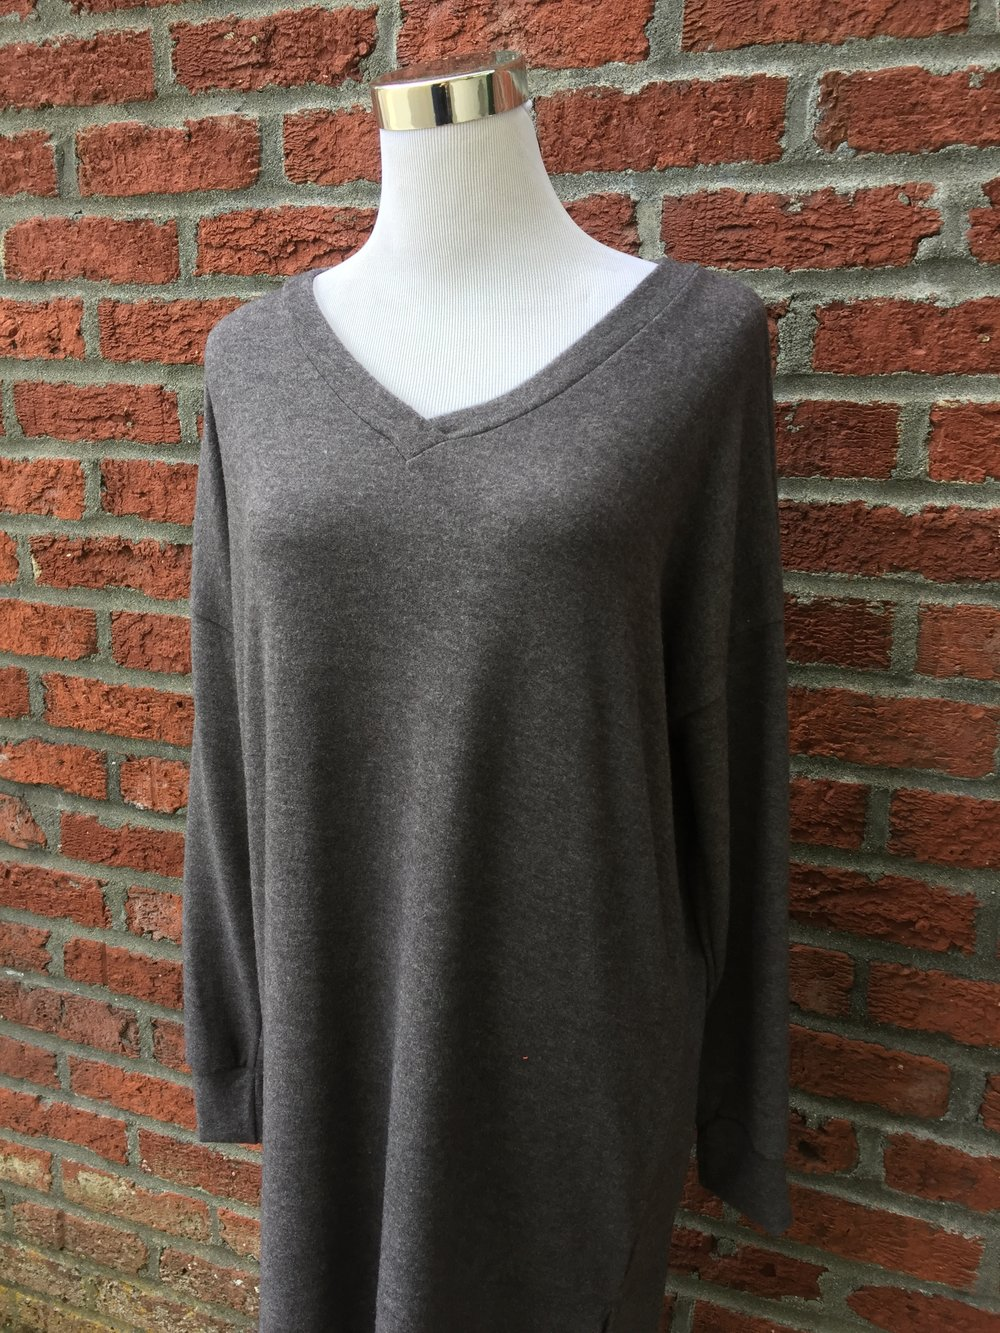 Reb+J tunic sweater ($32, grey and charcoal)